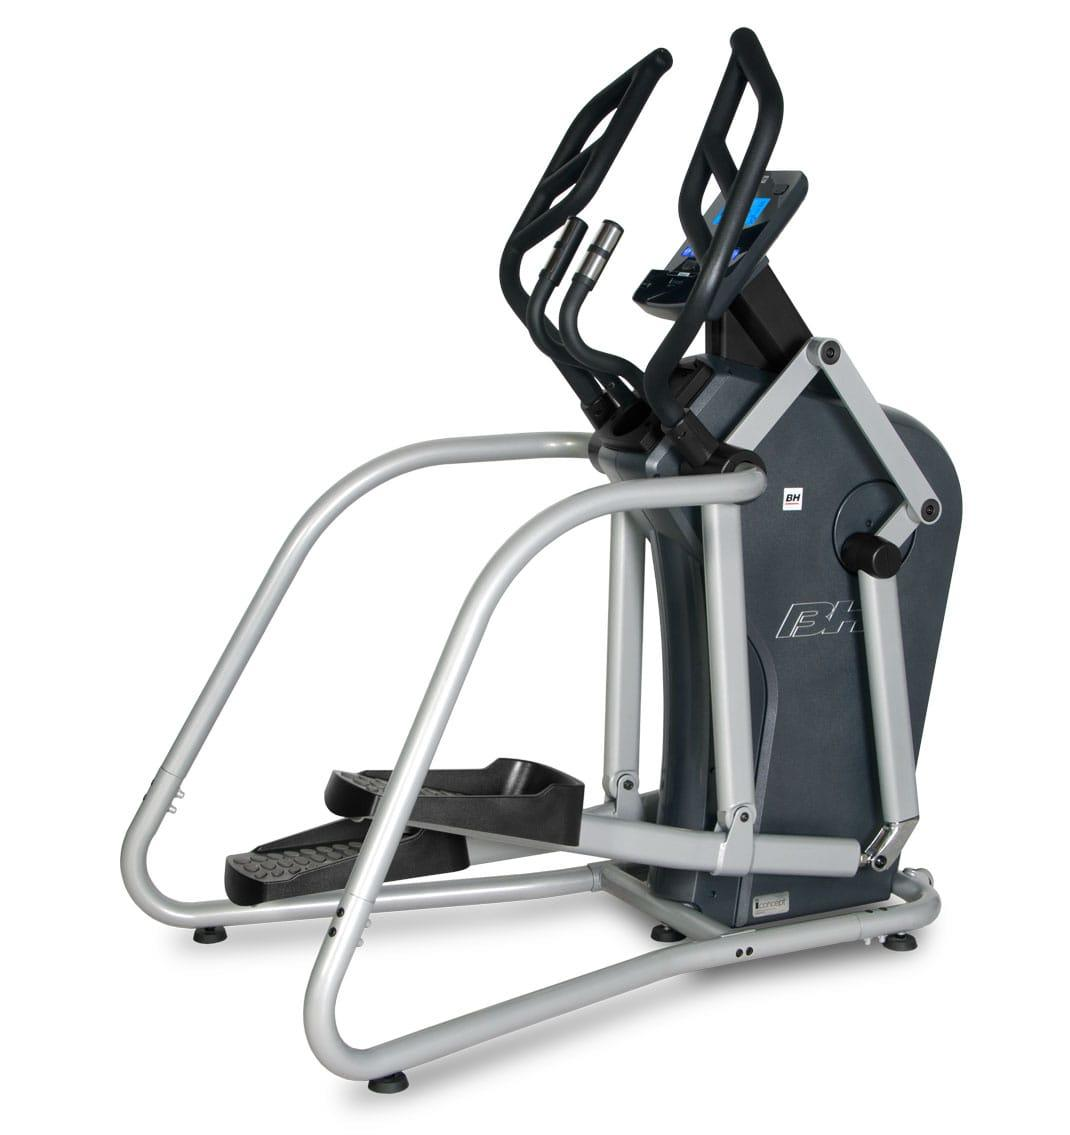 BH Fitness S5xi Elliptical Machine